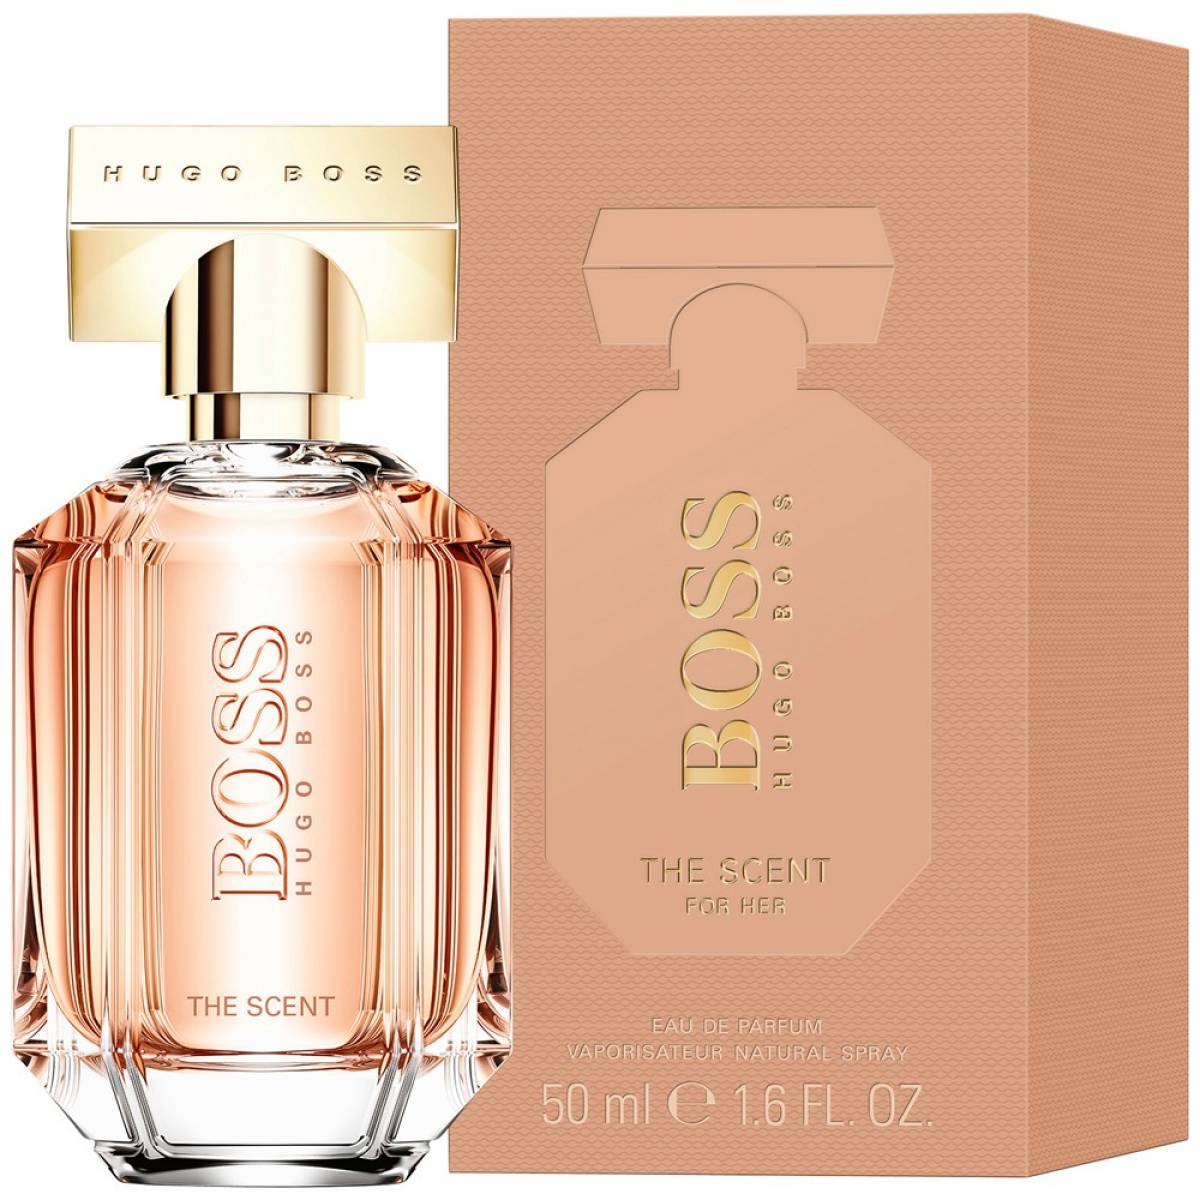 Hugo boss the scent for her eau de parfum 50ml vaporizador